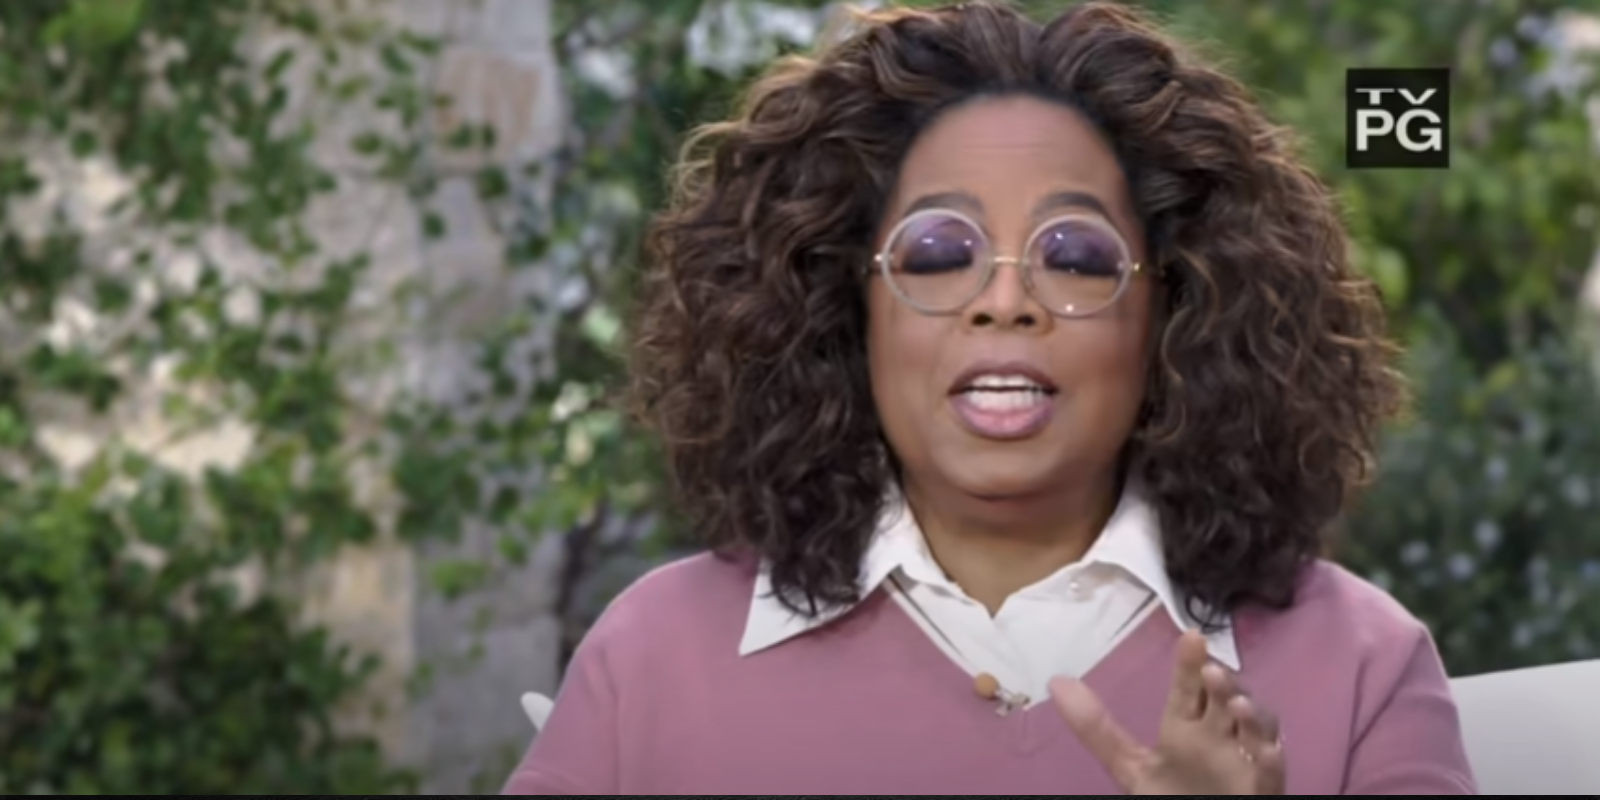 'Digital Blackface': It's racist for non-Black people to share Oprah memes because it 'co-opts Black identity' says social justice organization